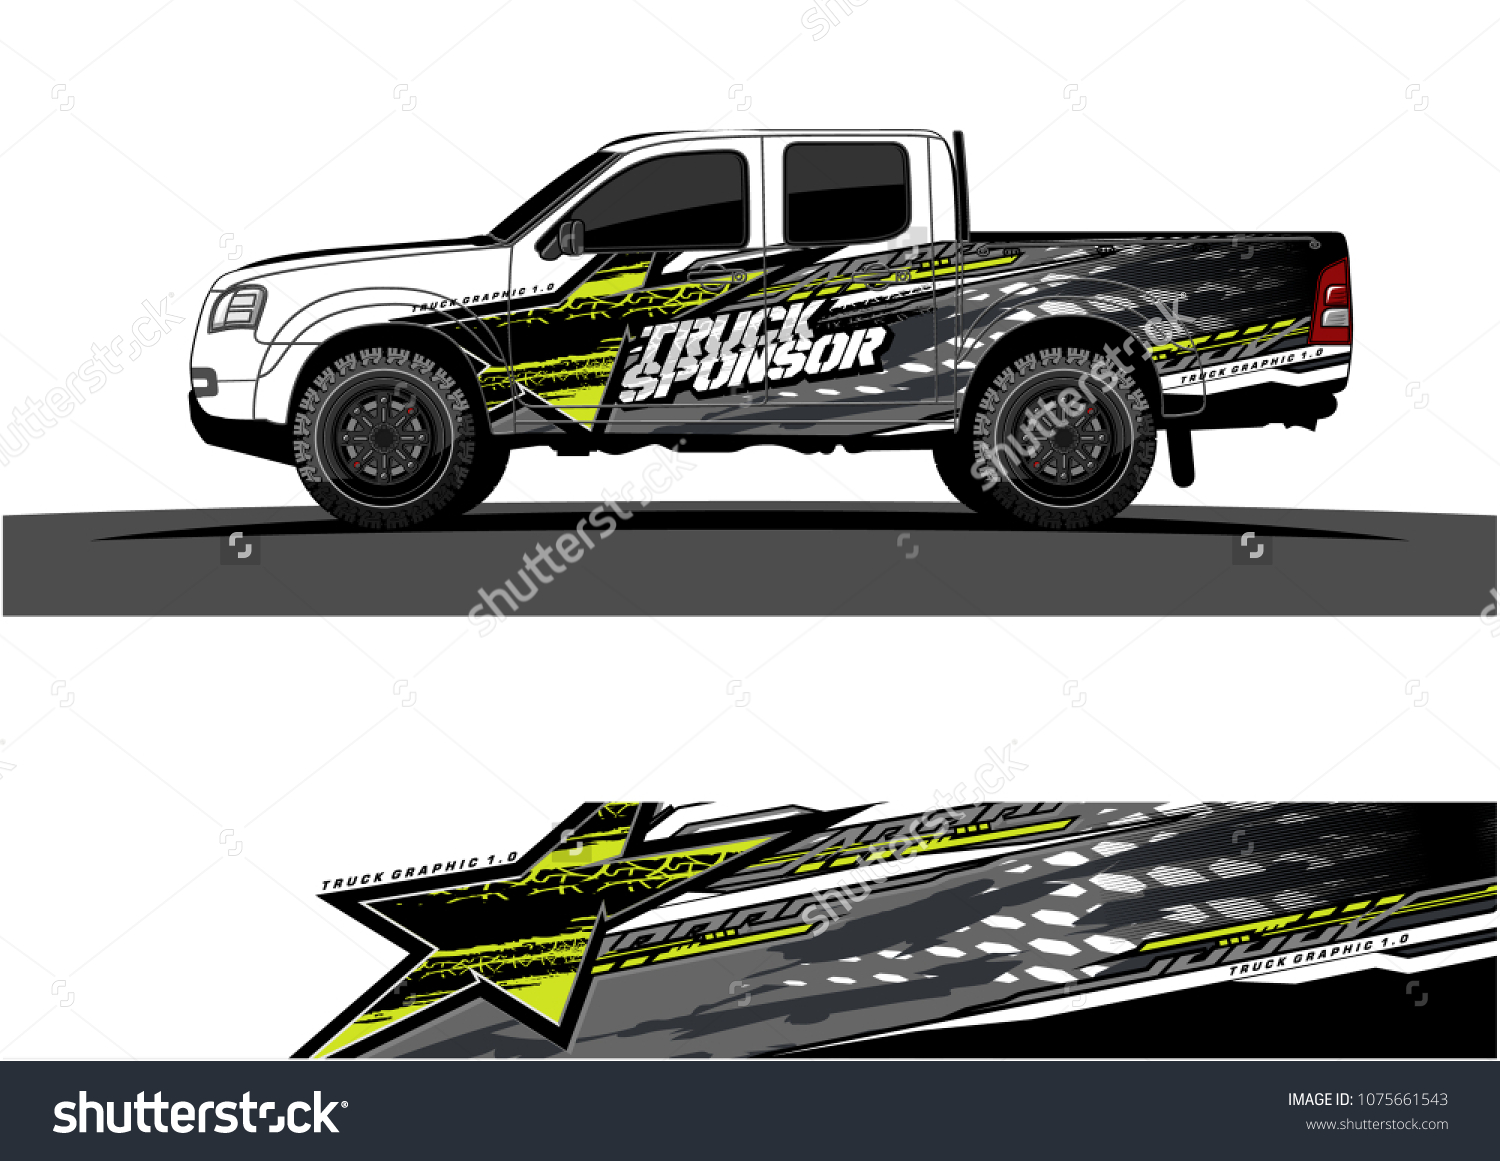 Pickup truck graphic vector abstract star shape with modern camouflage design for vehicle vinyl wrap